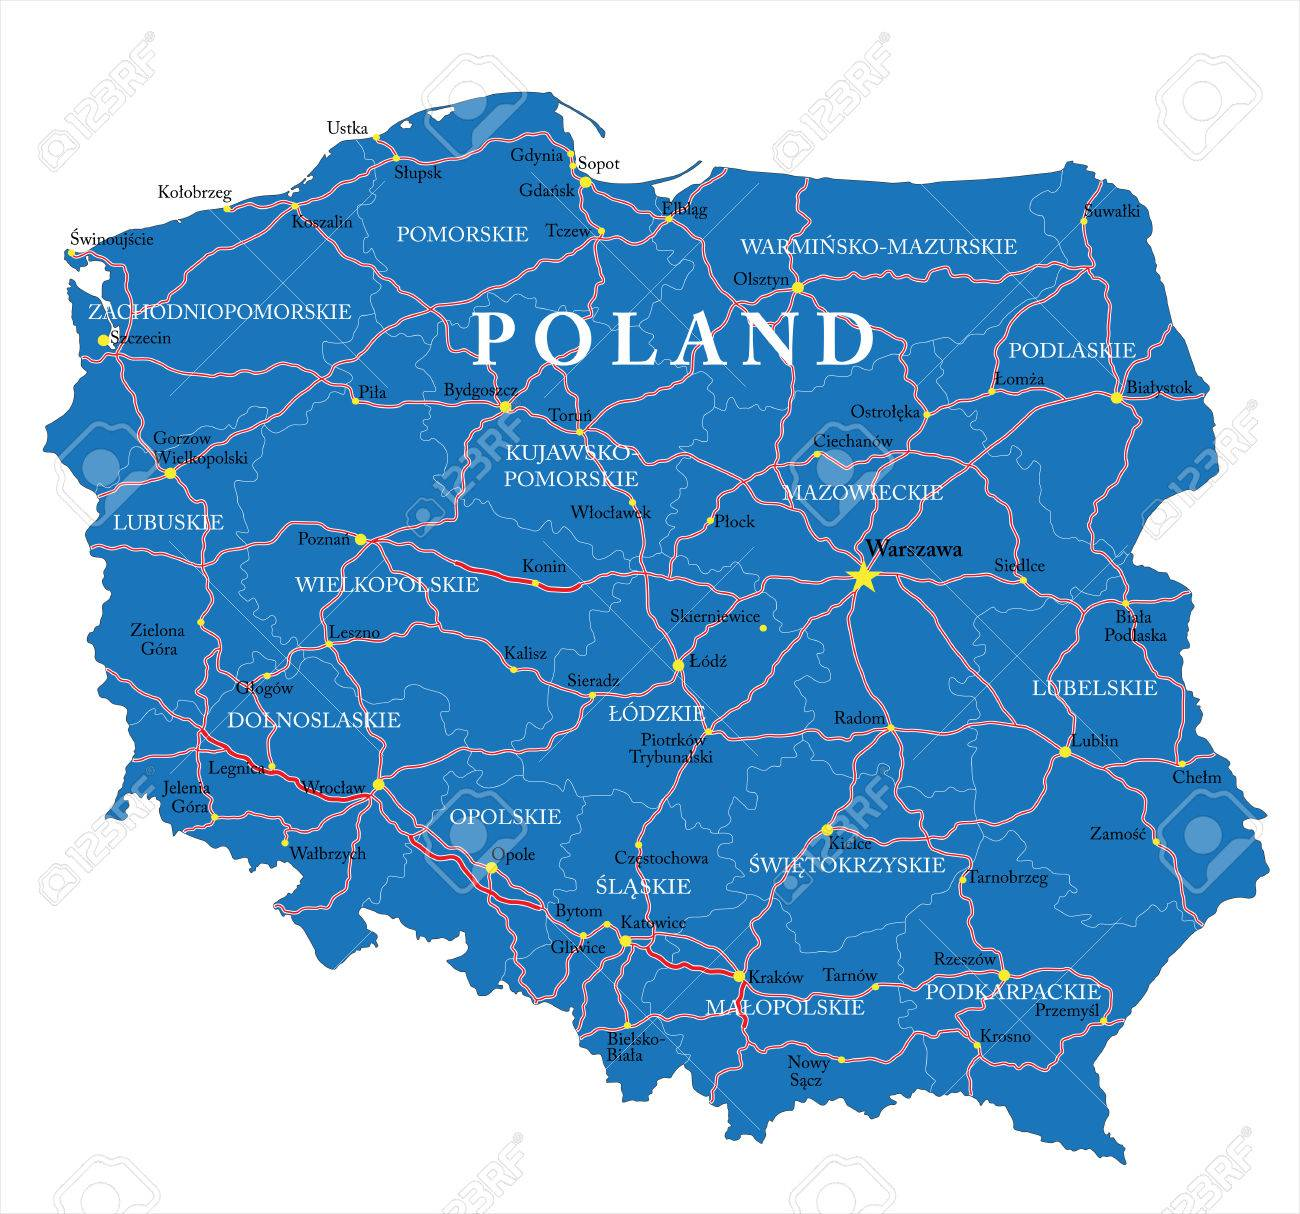 Lomza Poland Map.Poland Map Royalty Free Cliparts Vectors And Stock Illustration